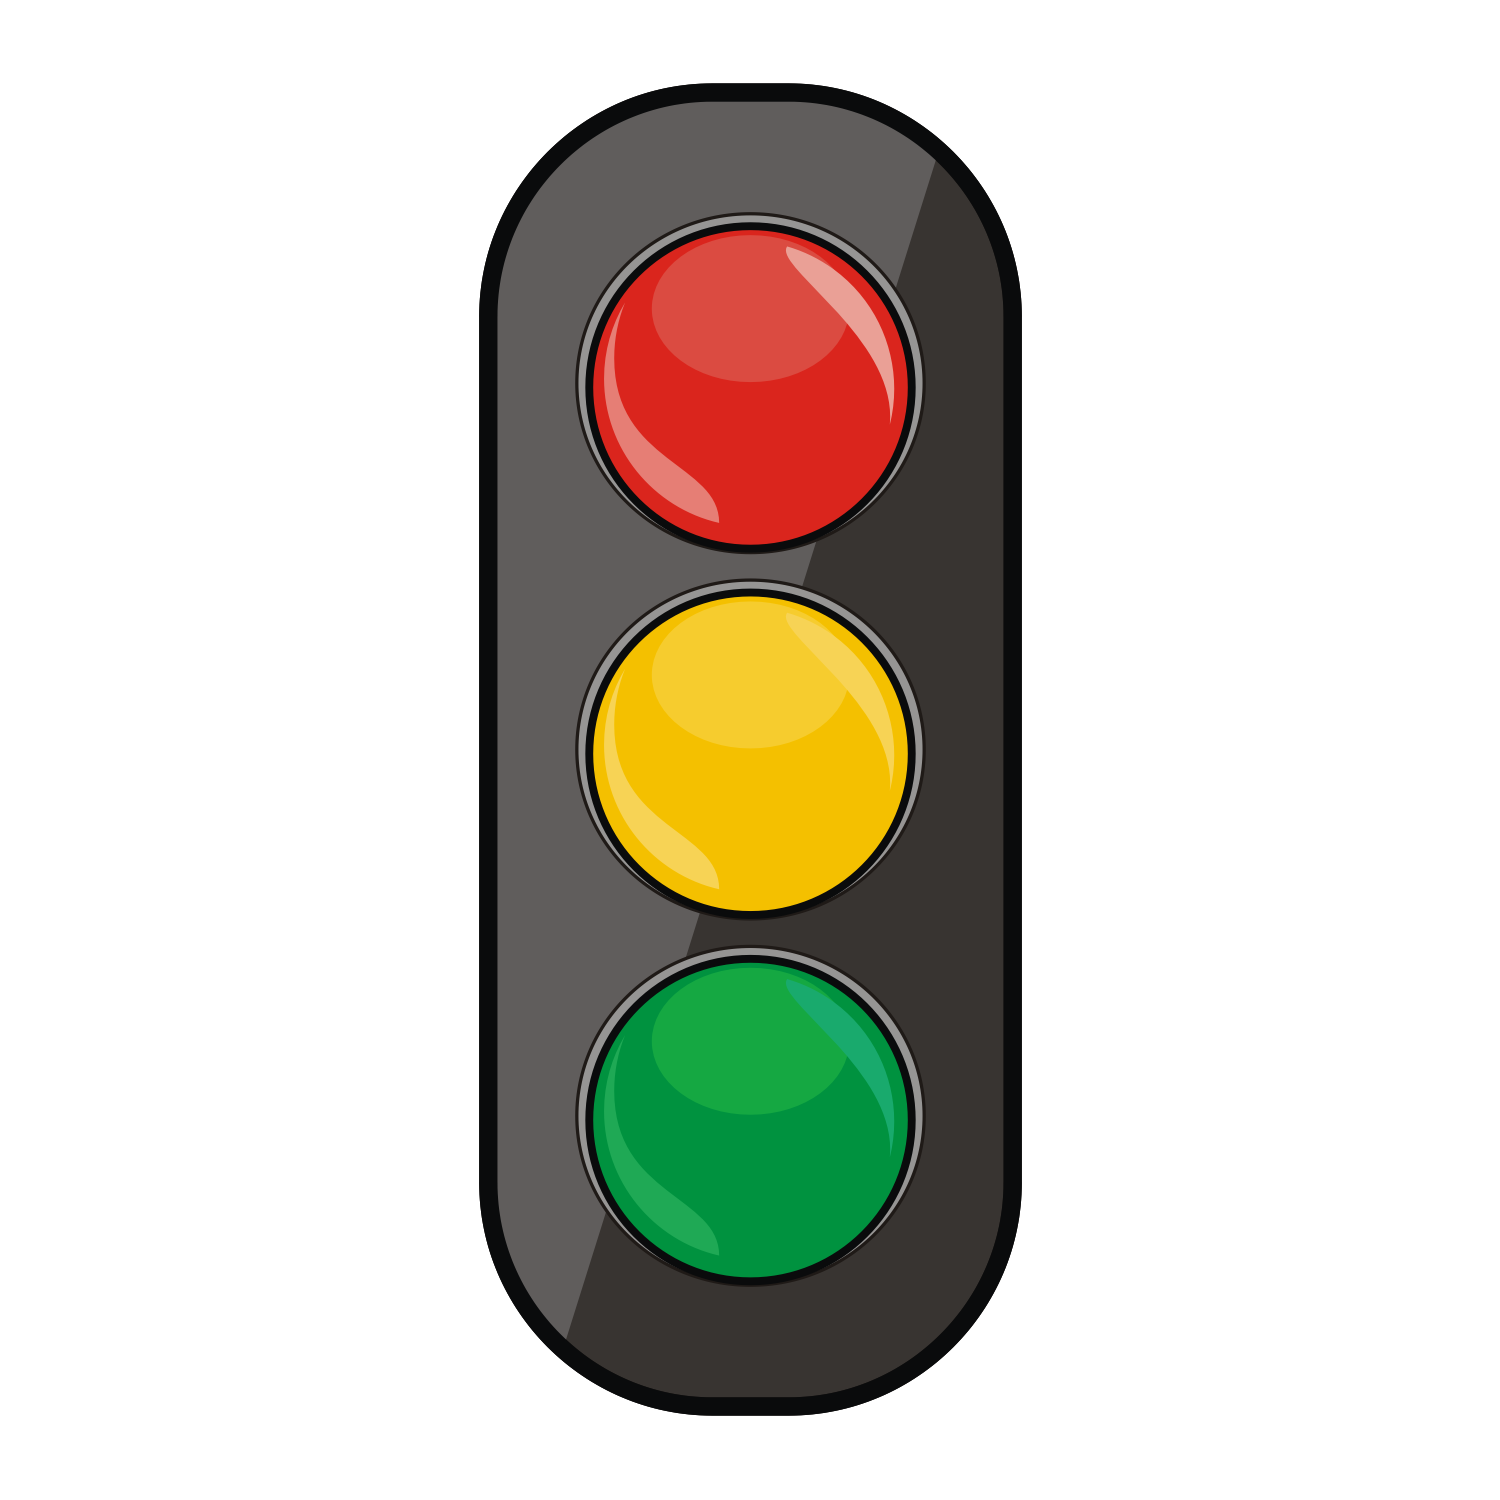 1500x1500 Stoplight Stop Light Traffic Free Vector Clipart Image